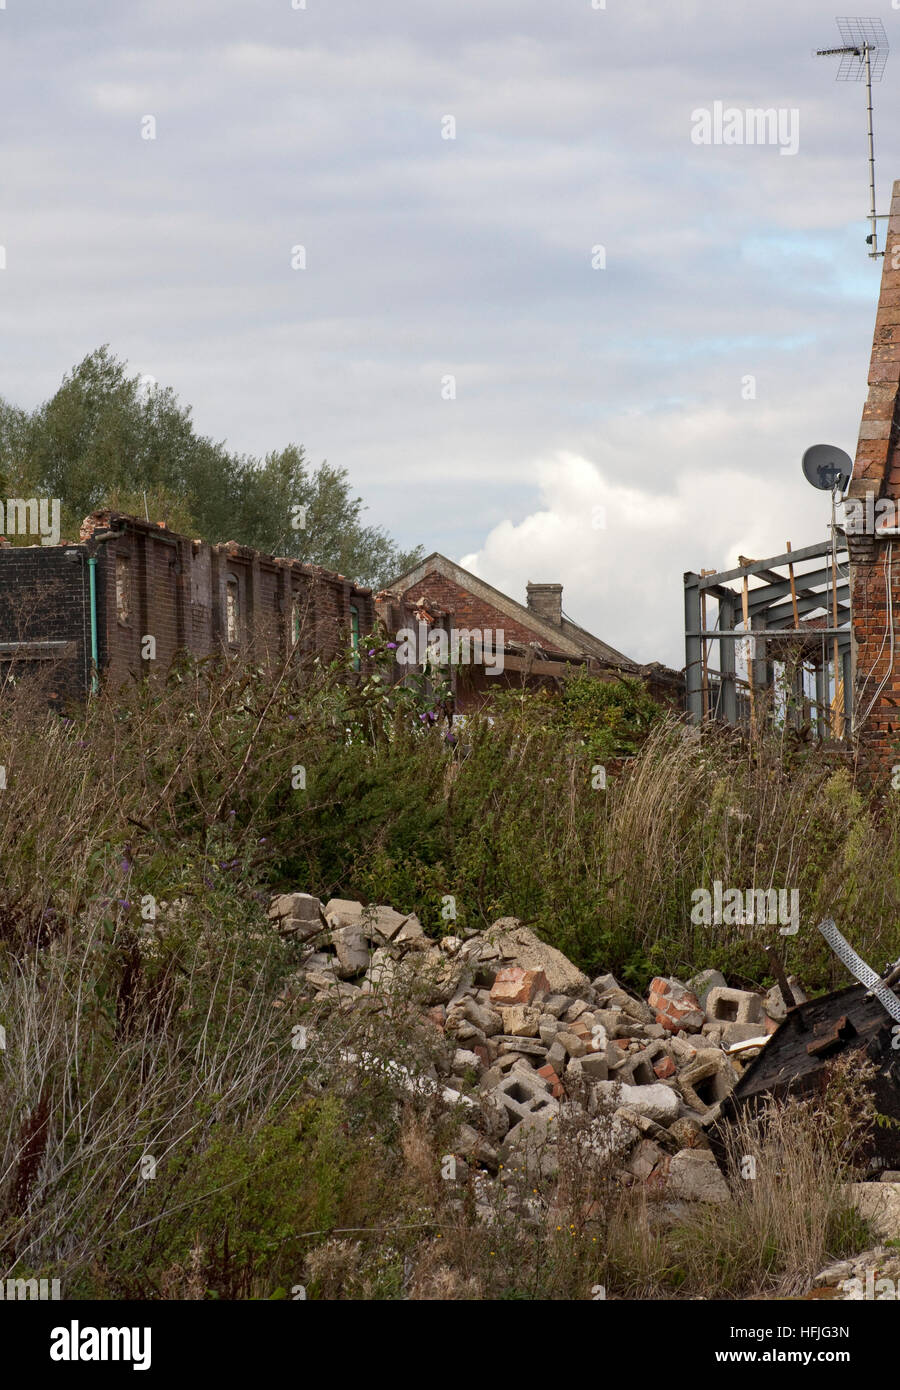 Overgrown and partially demolished industrial site Stock Photo